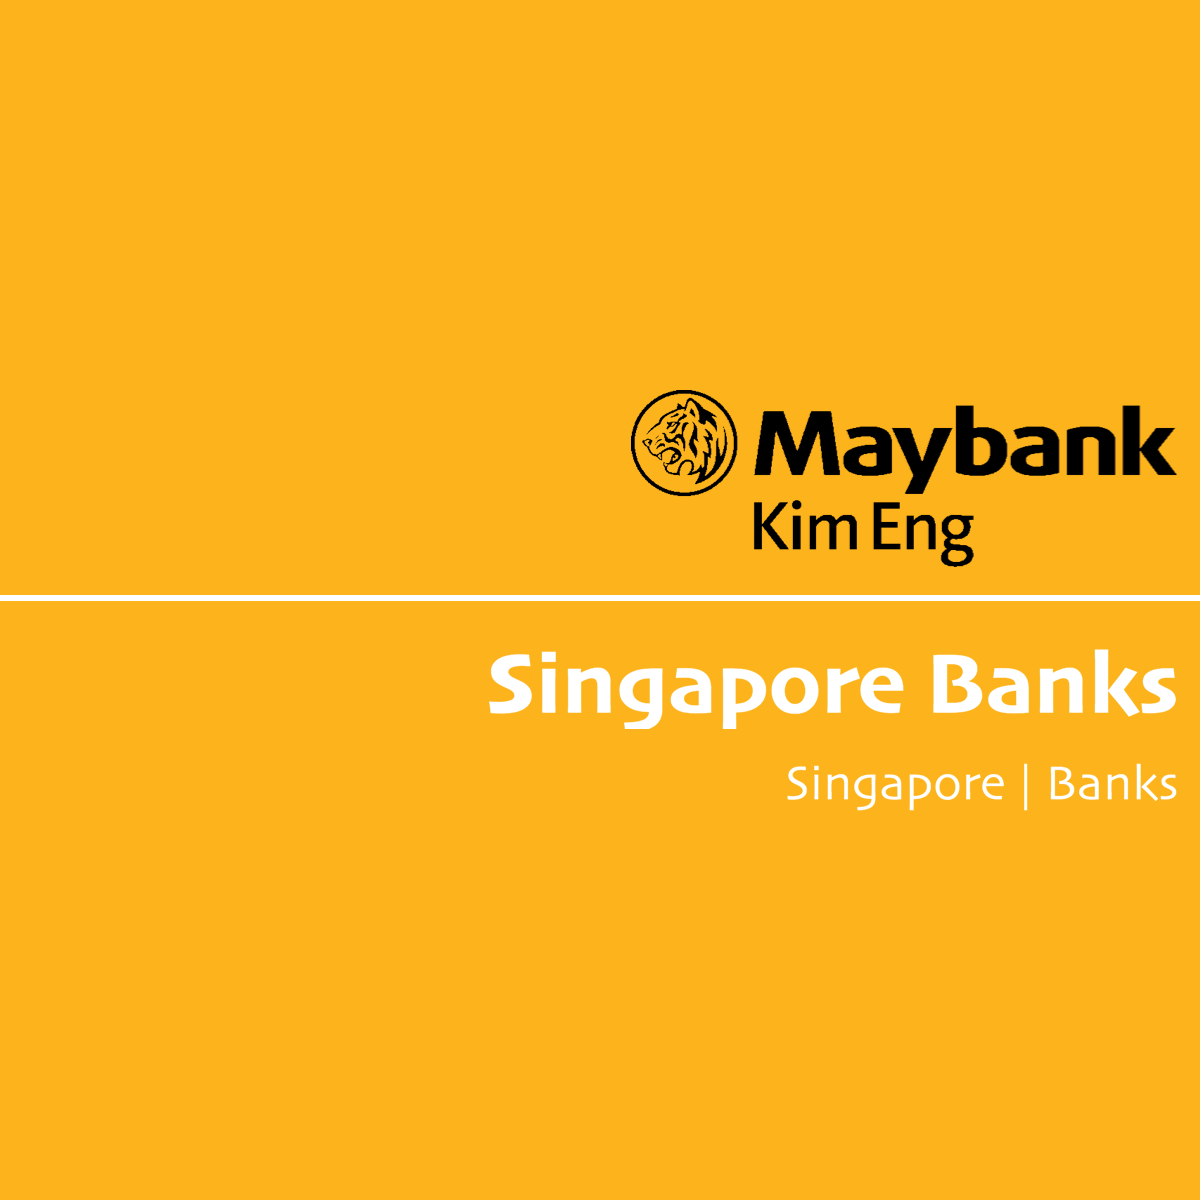 Singapore Banks - Maybank Kim Eng 2017-02-01: A Challenging Year